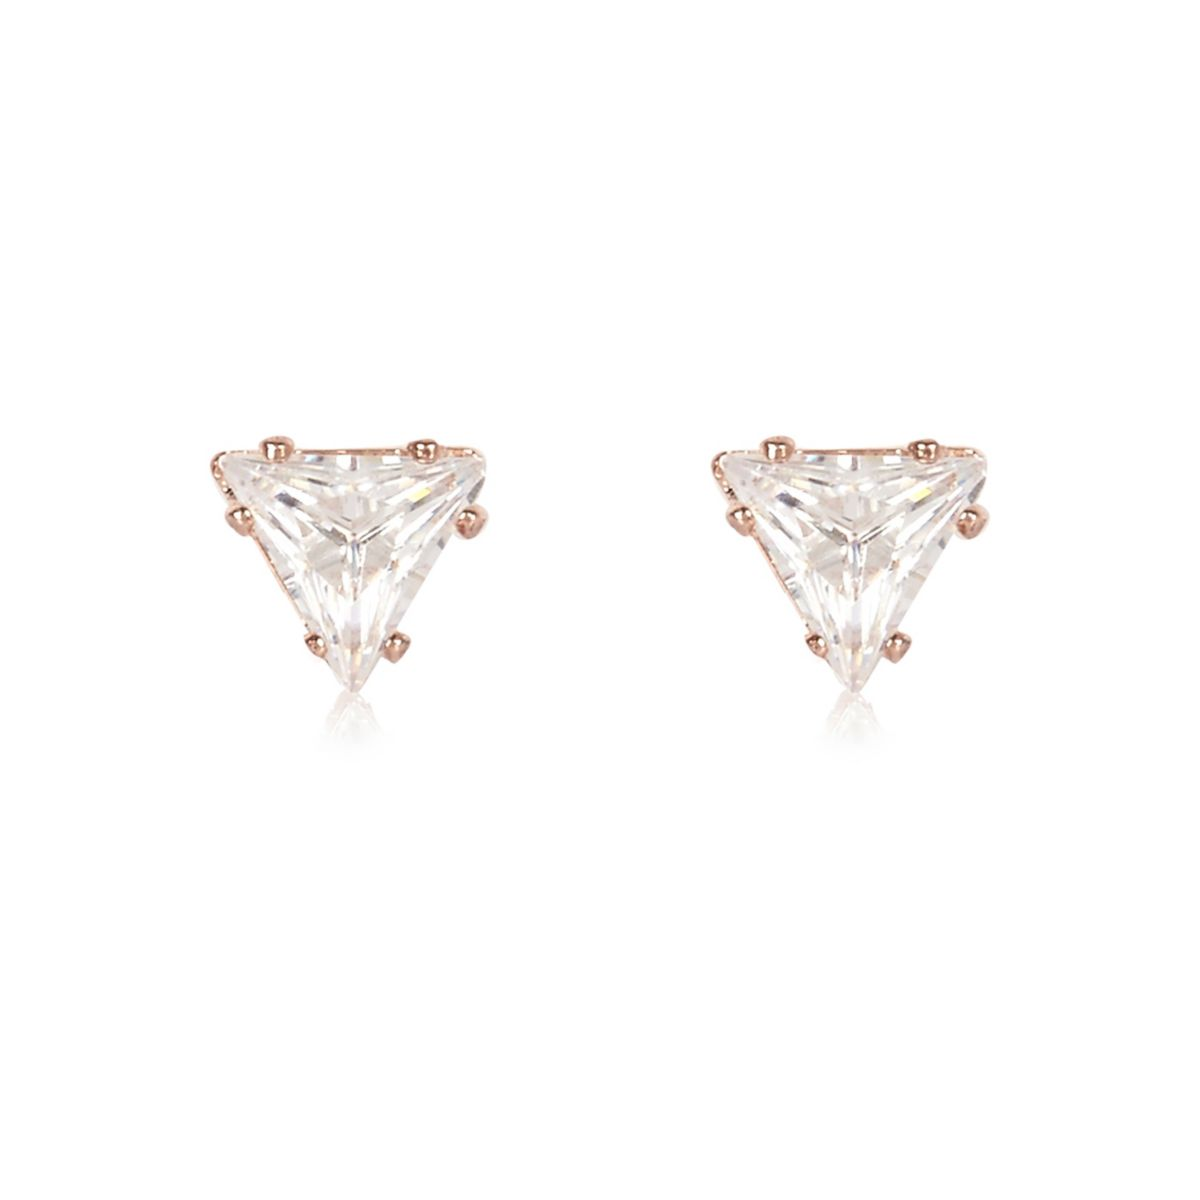 Clous d'oreilles doré rose motif triangle